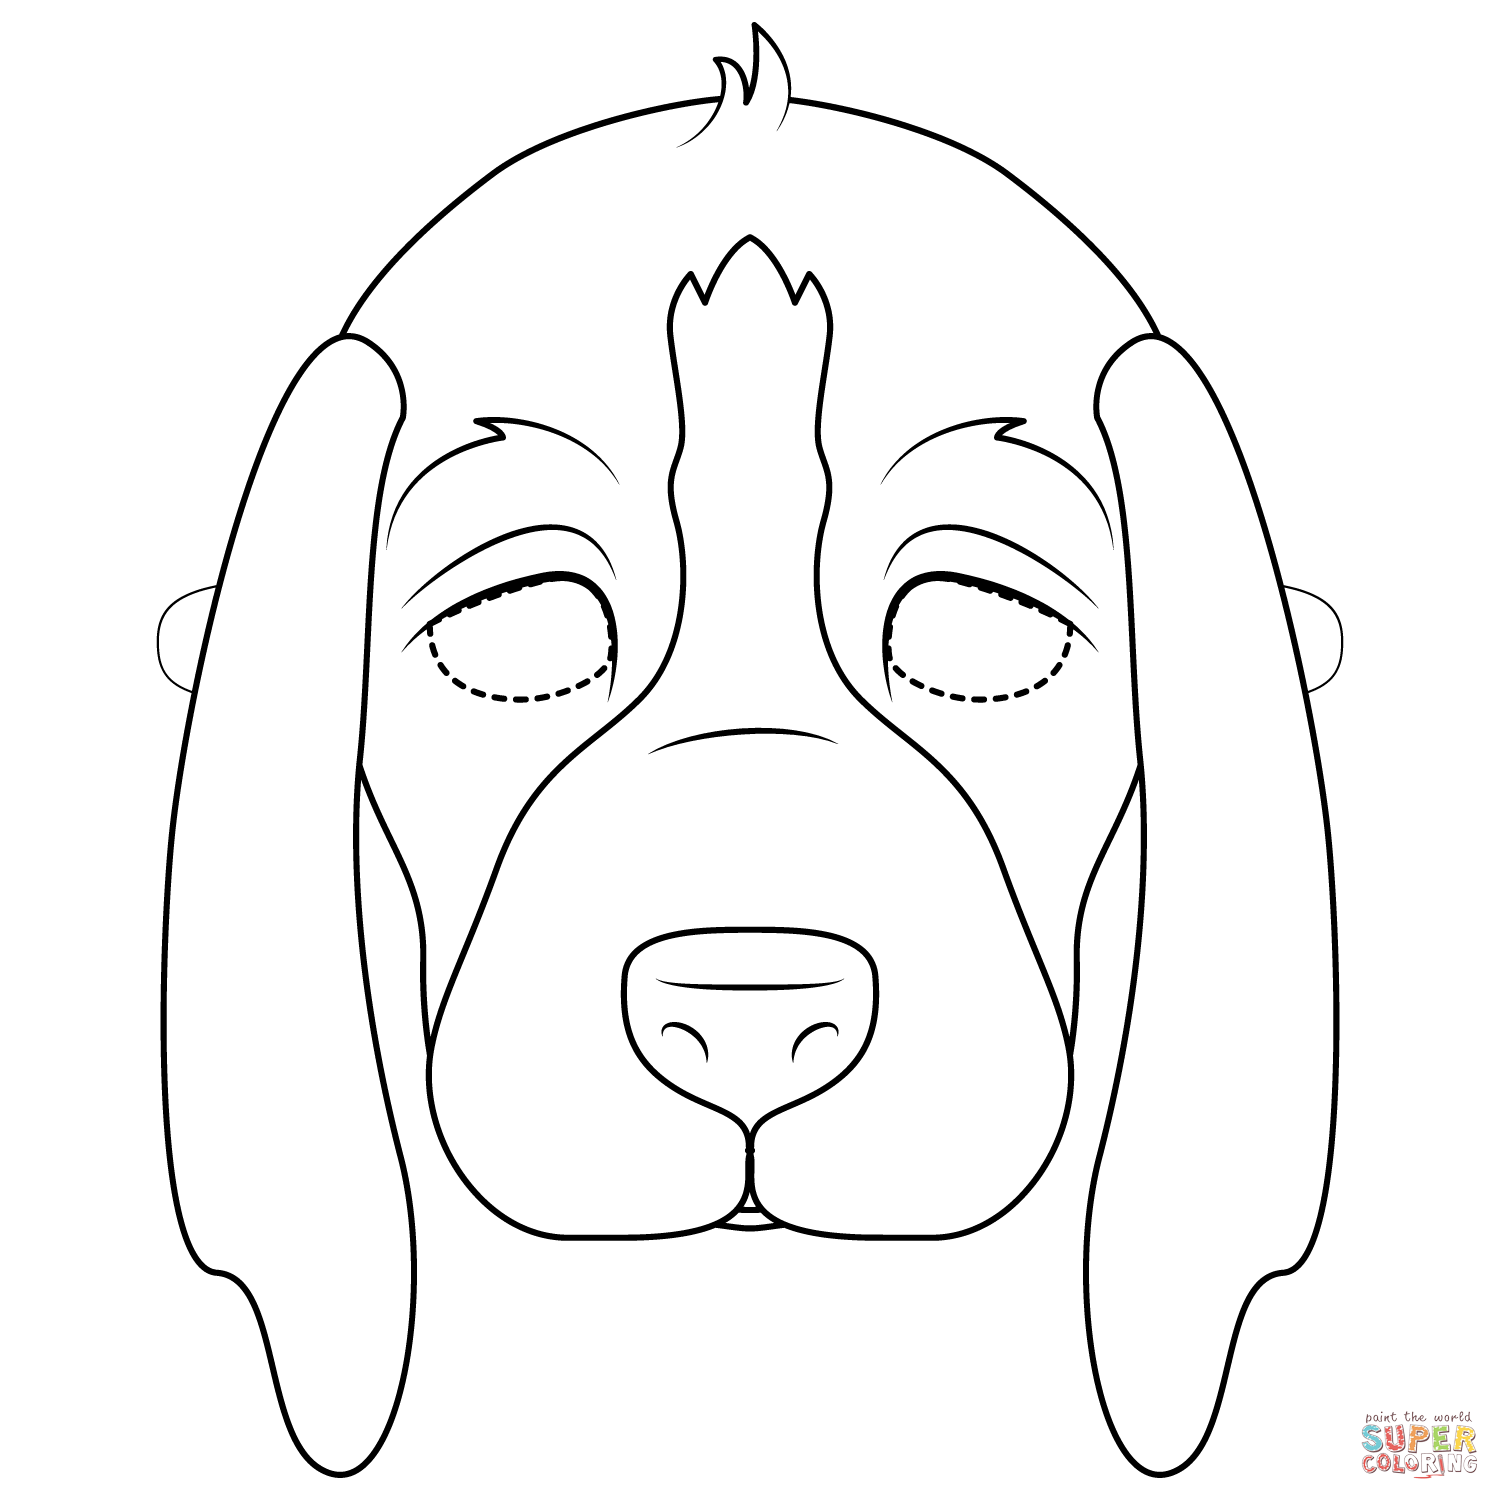 Puppy Mask Coloring Page Free Printable Coloring Pages Puppy Coloring Pages Dog Coloring Page Dog Coloring Book